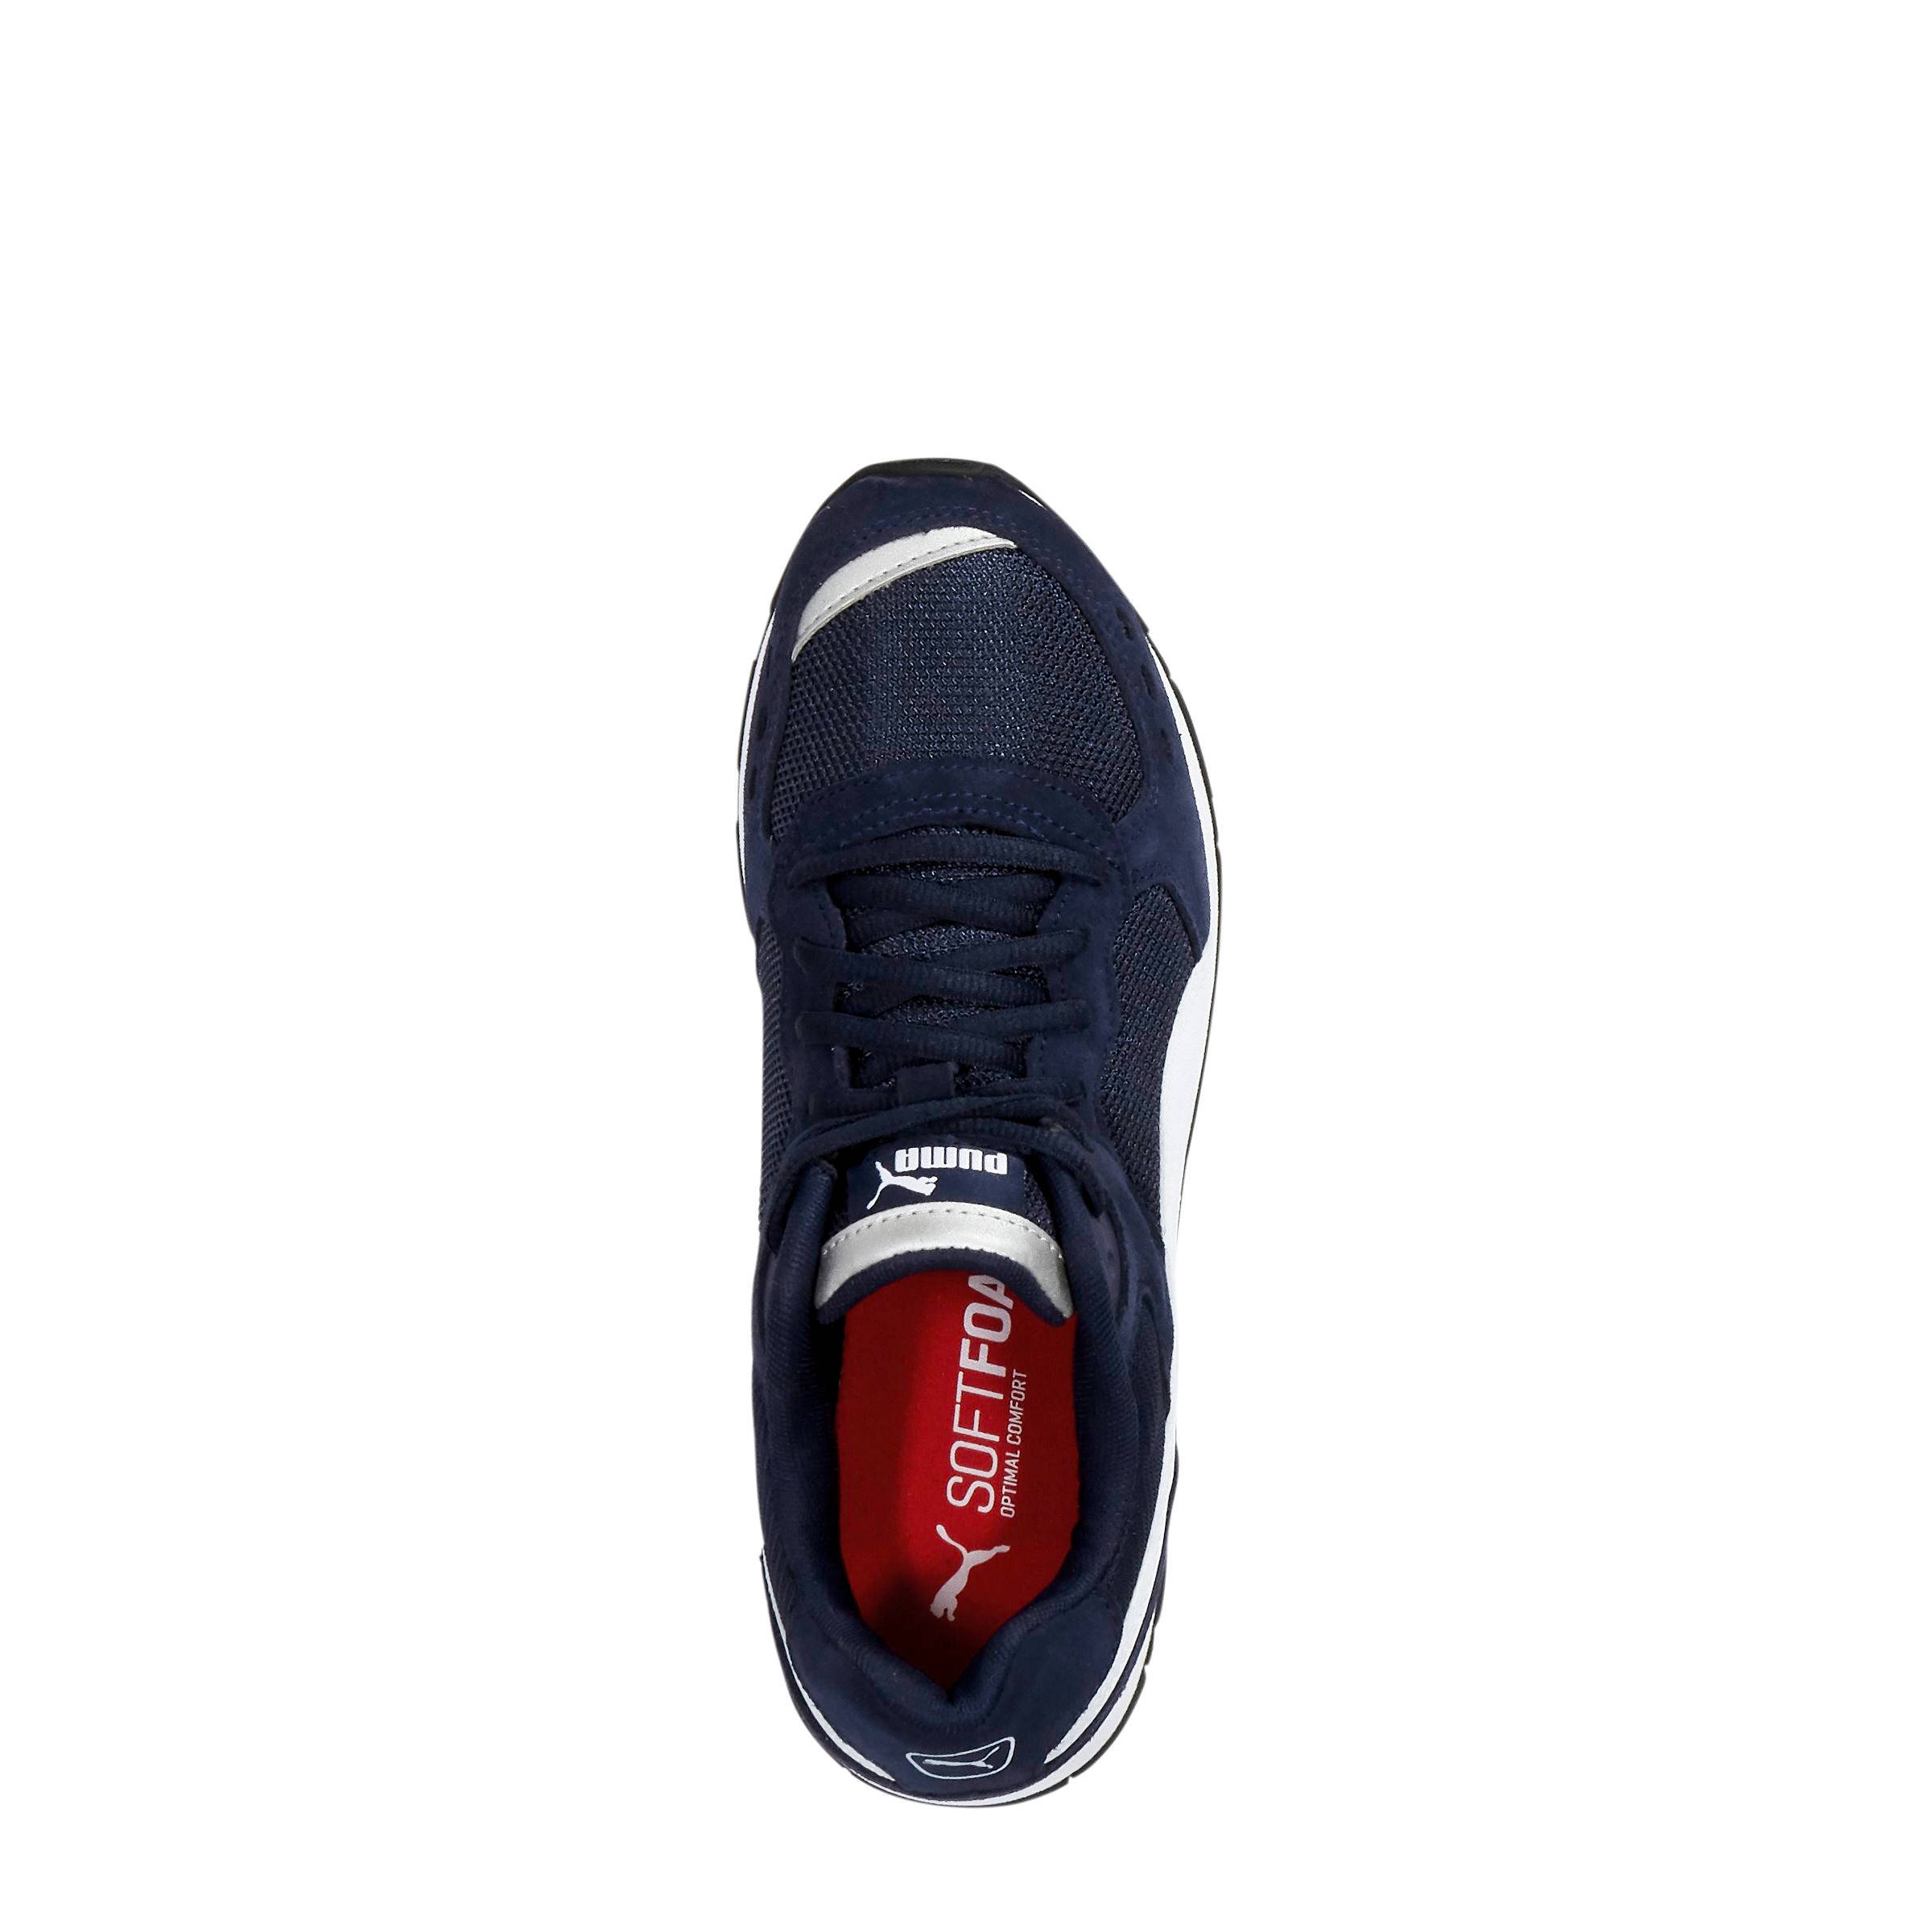 Vista sneakers donkerblauw/wit/rood